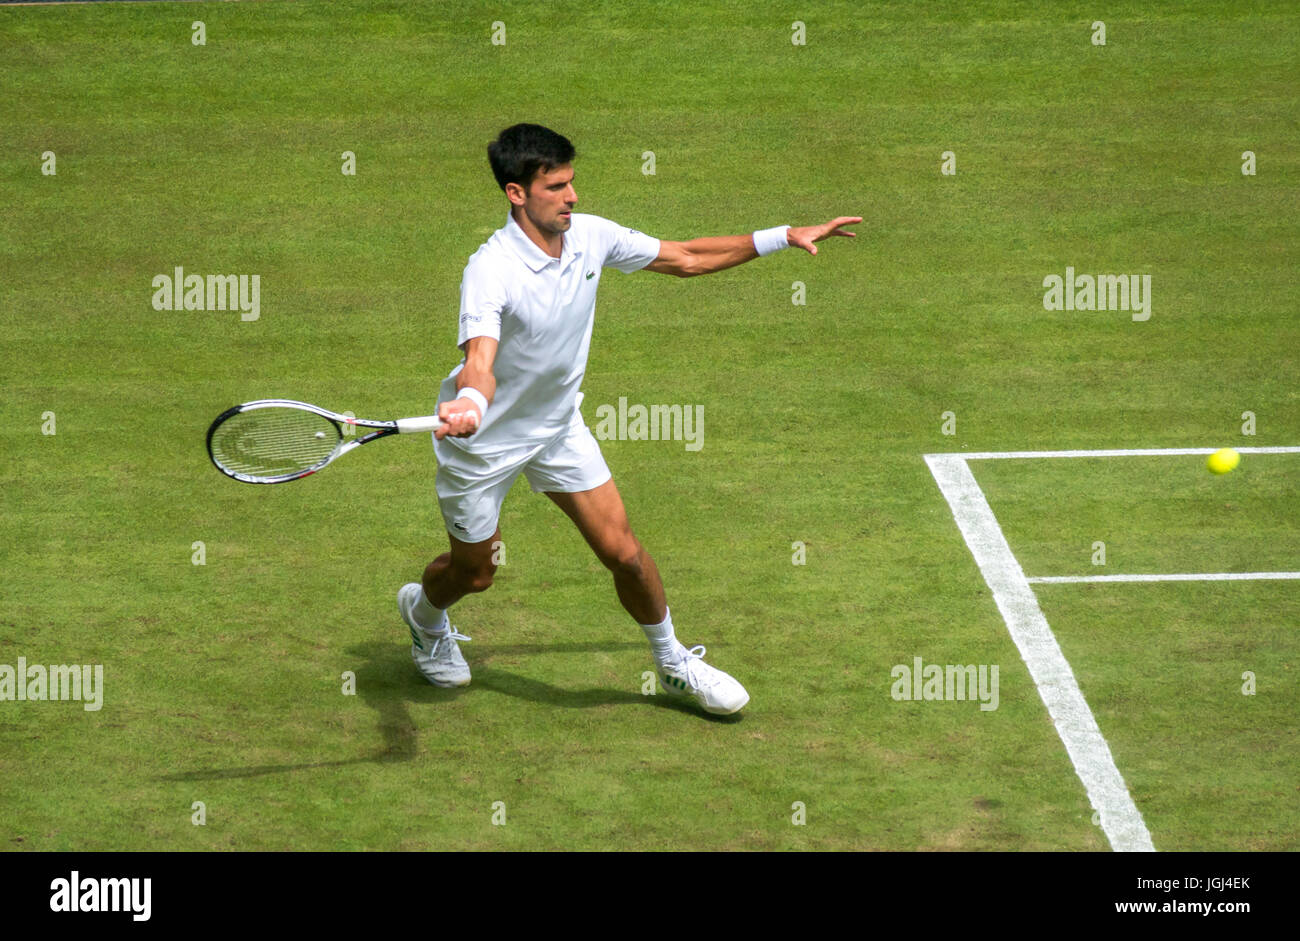 Novak Djokovic returns serve on Centre Court Wimbledon tennis championship 2017, London, England, UK - Stock Image